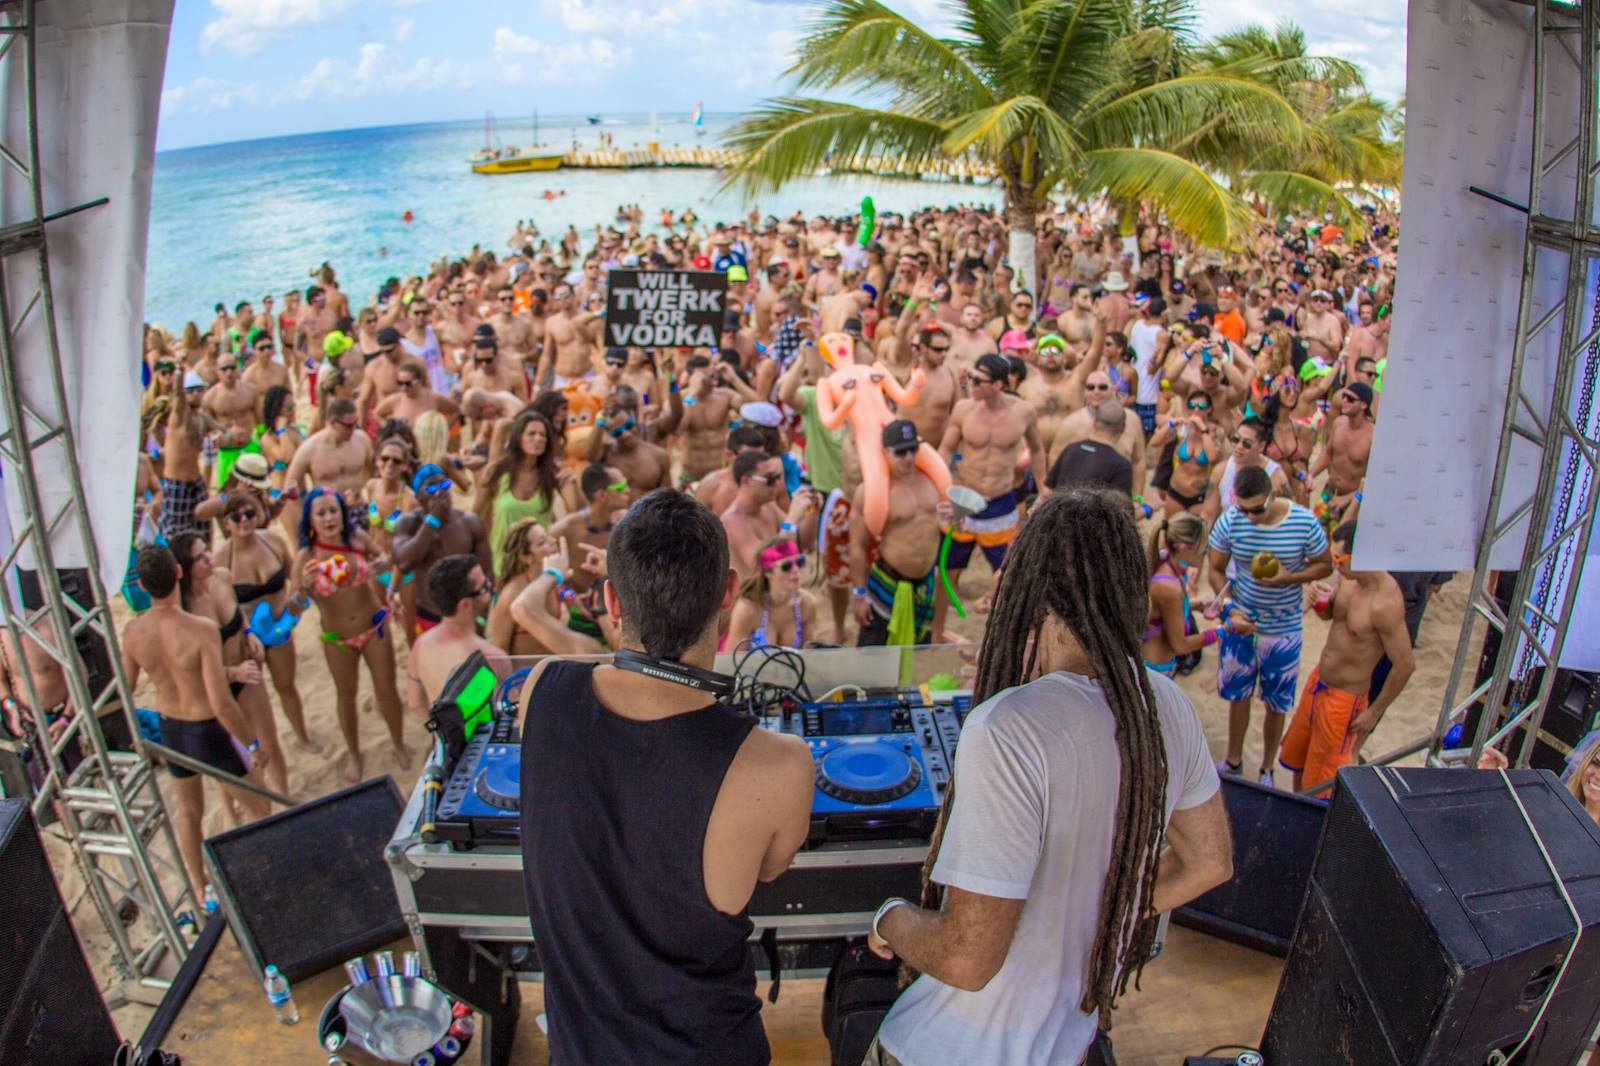 The First Ever All Inclusive Spring Break Edm Cruise Is